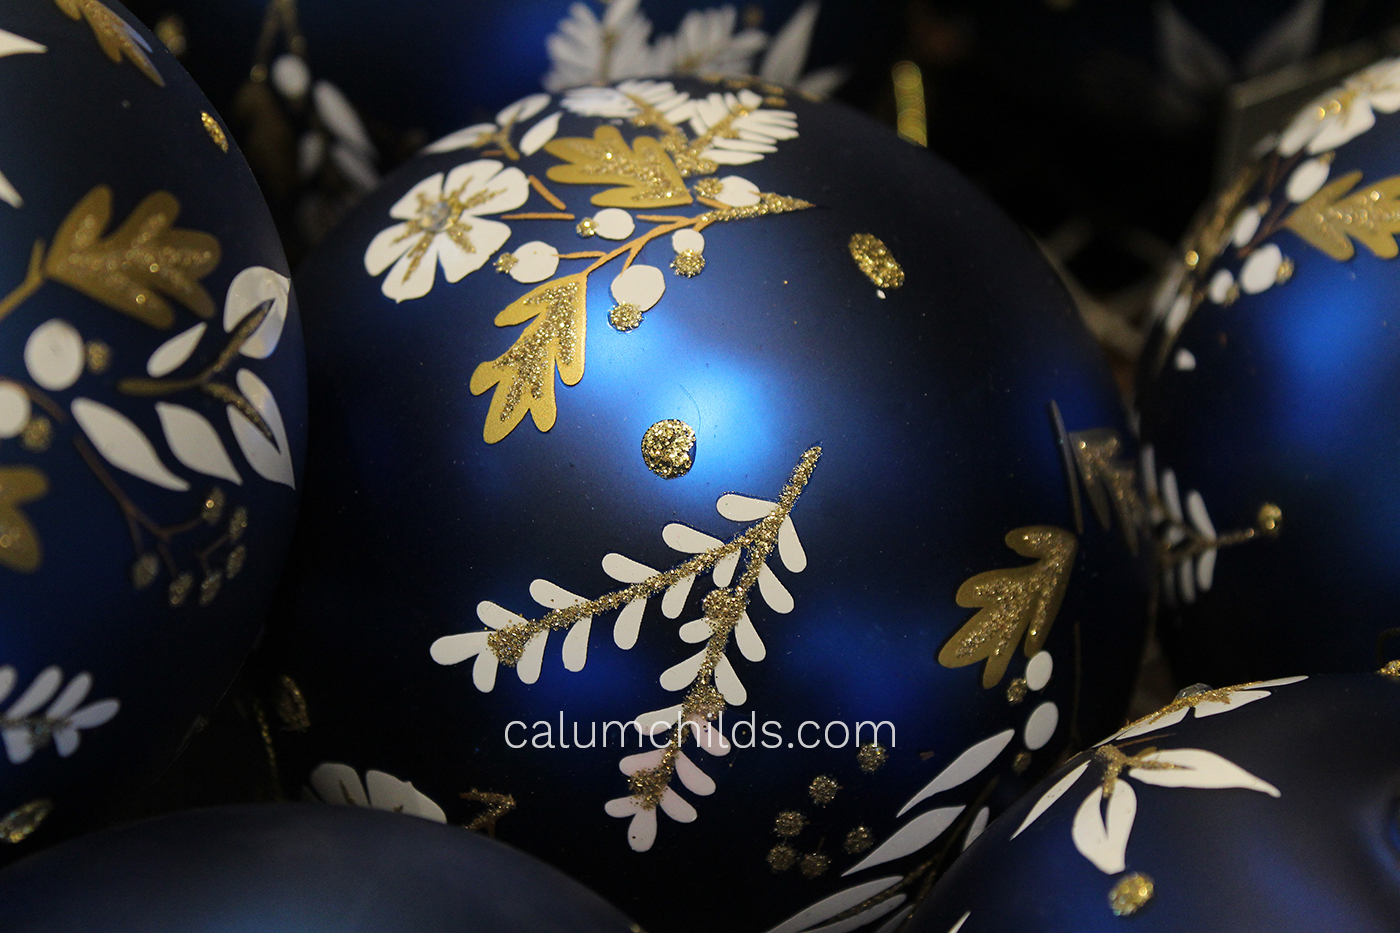 A blue bauble decorated with gold glitter and leaf-shaped paper.